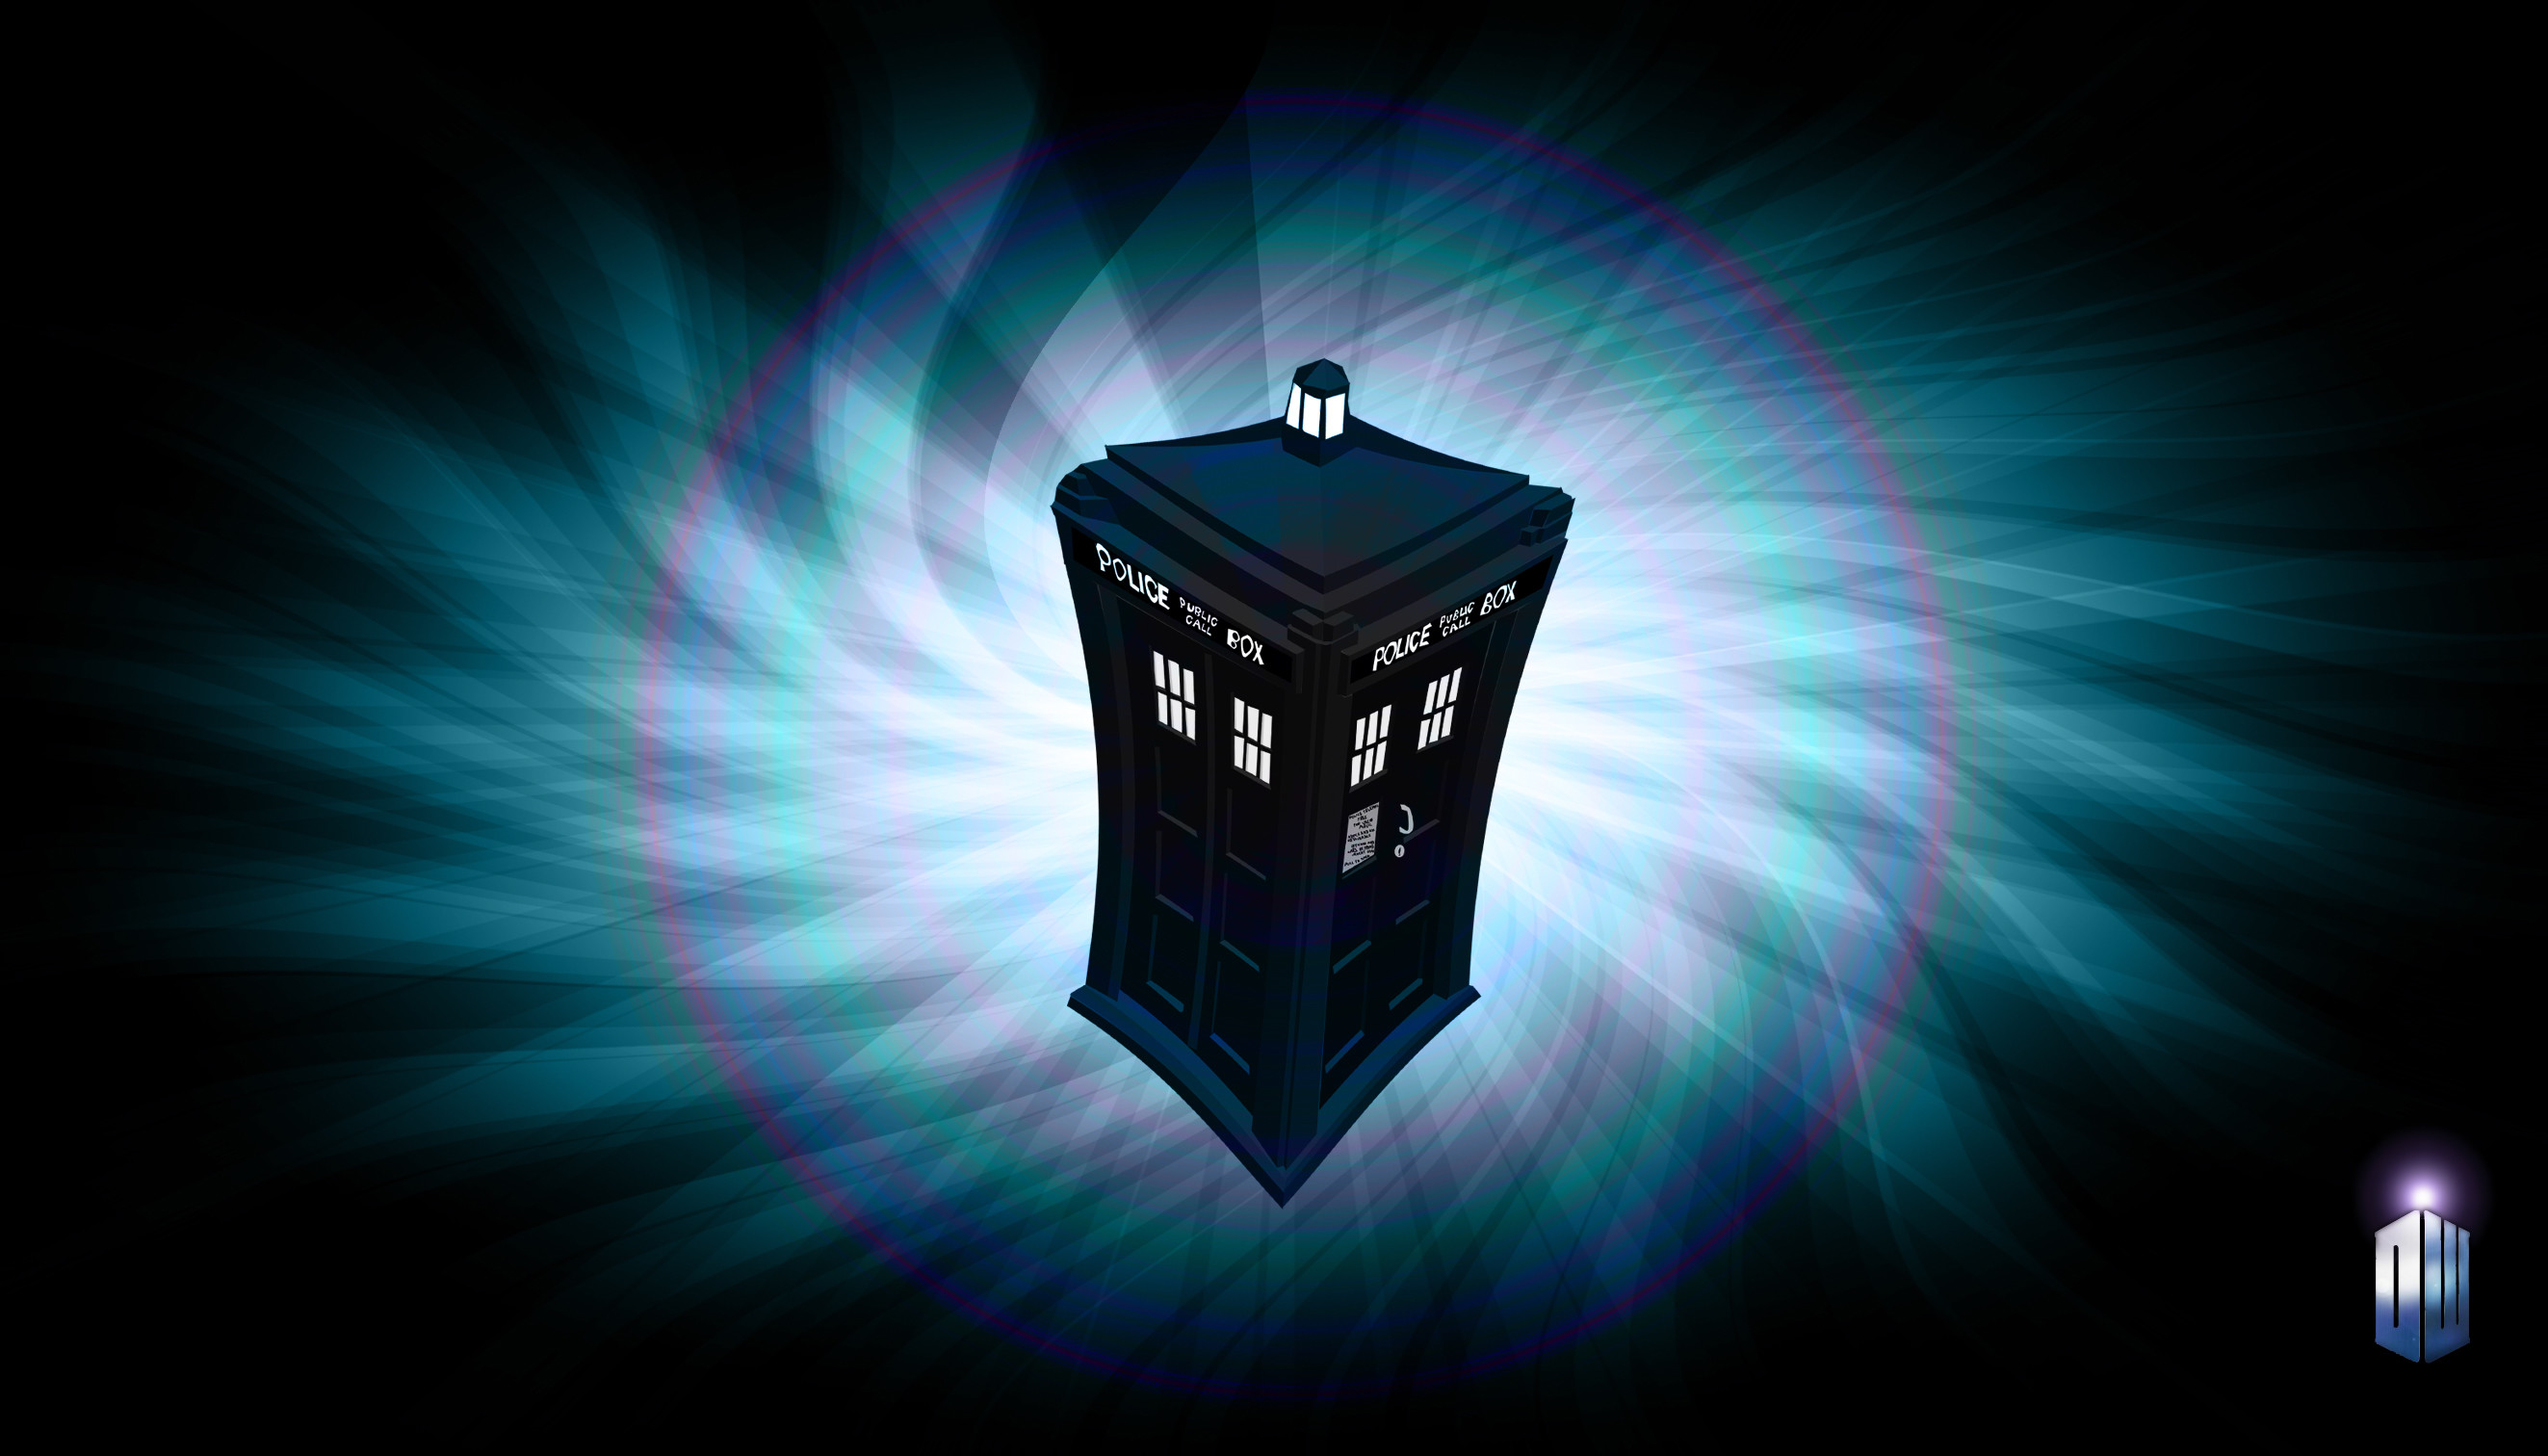 Doctor who ipad wallpaper 58 images - Dr who wallpaper ...